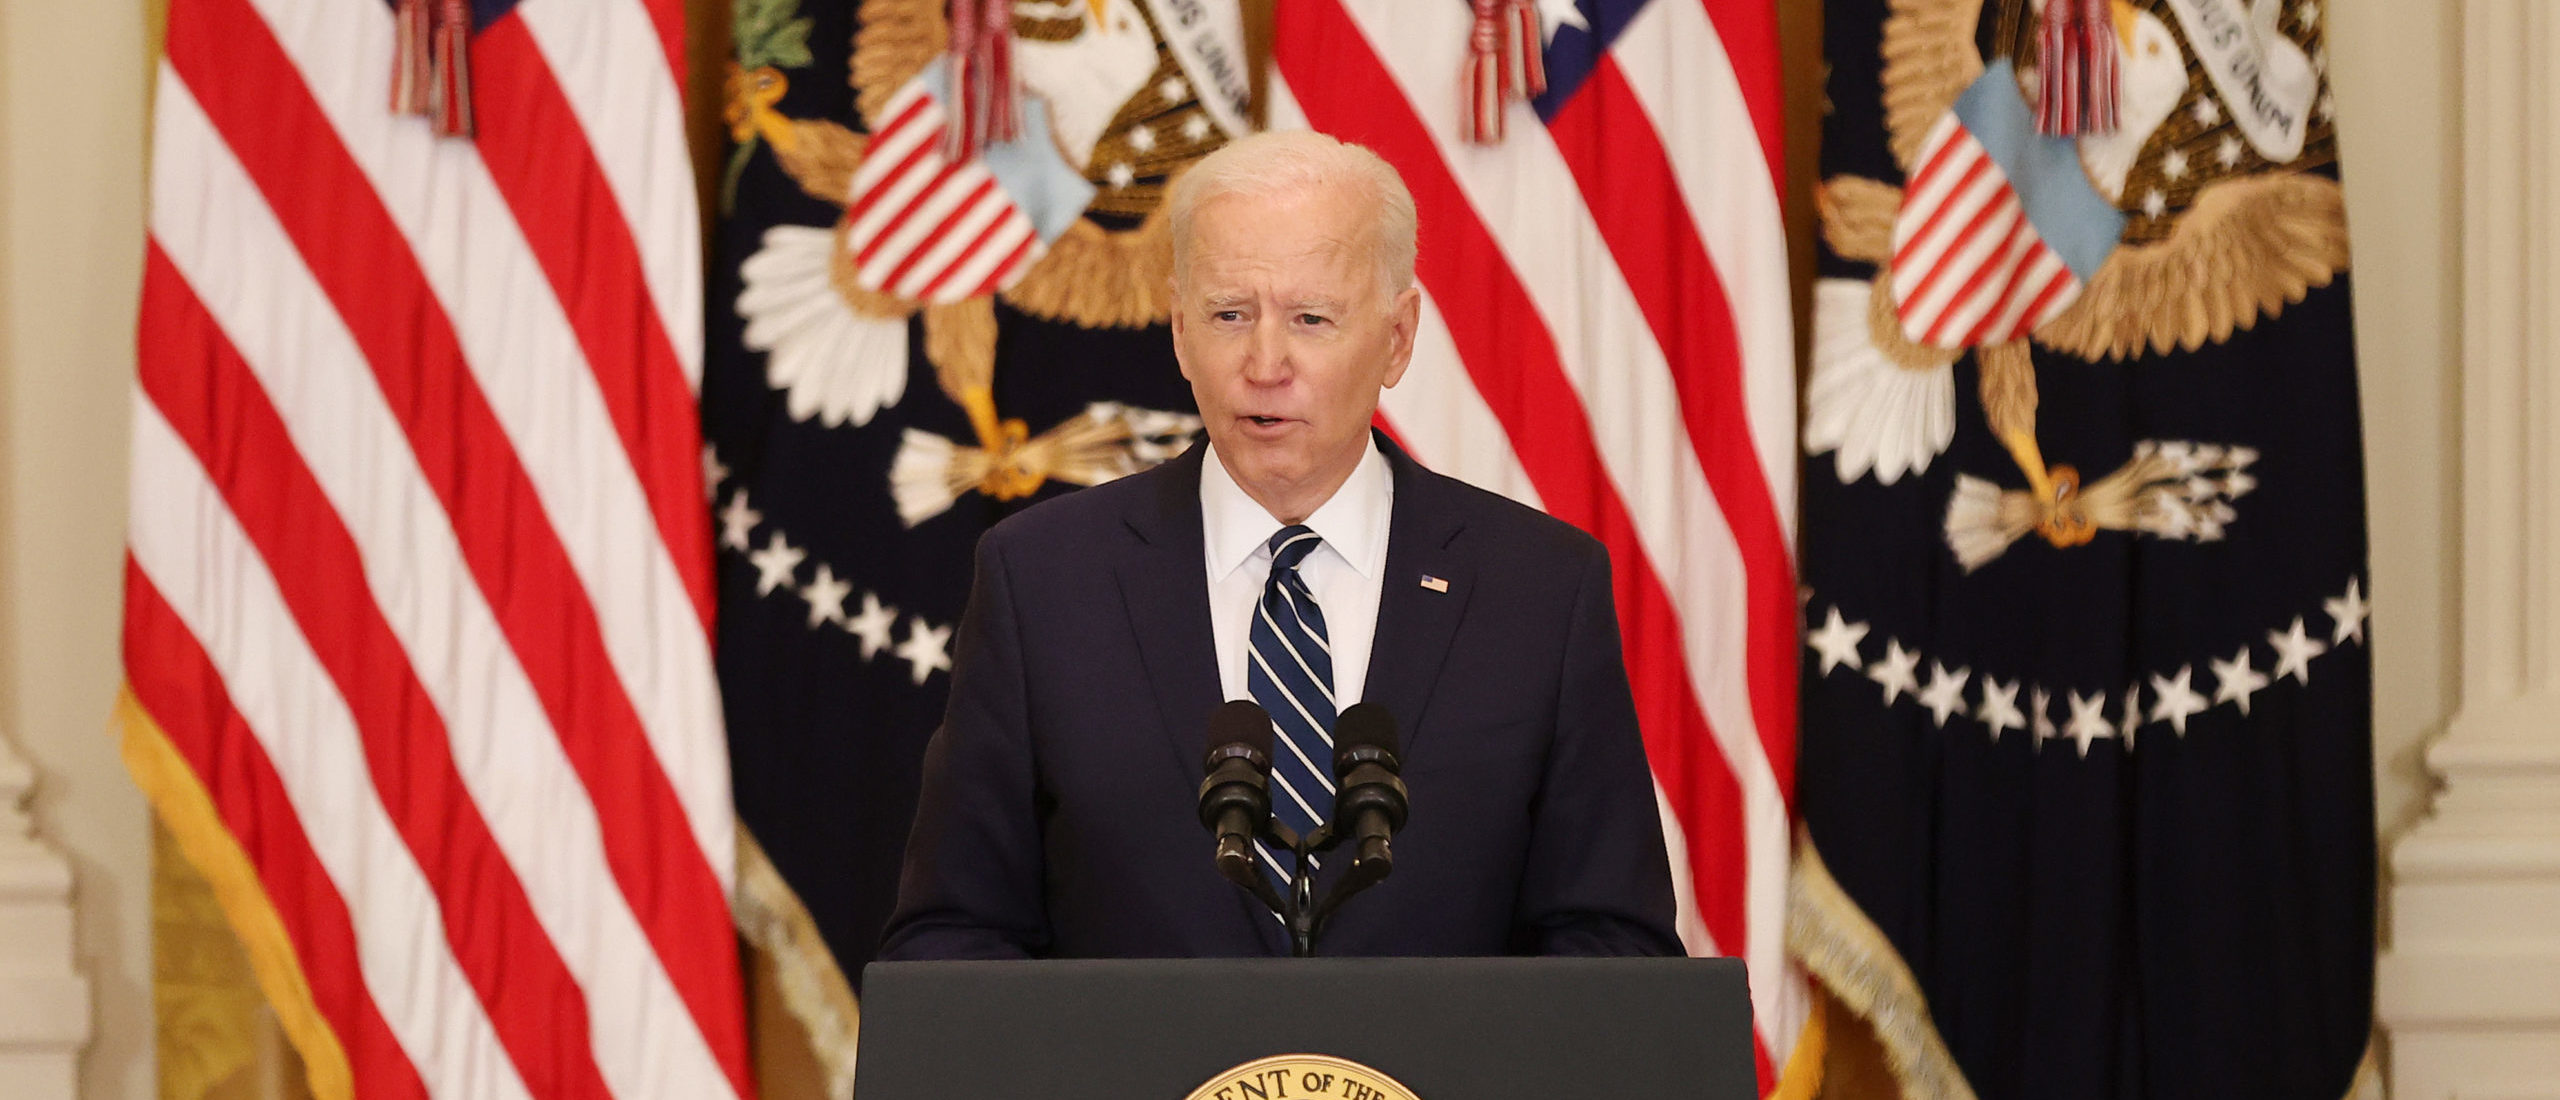 U.S. President Joe Biden talks to reporters during the first news conference of his presidency in the East Room of the White House on March 25, 2021 in Washington, DC. On the 64th day of his administration, Biden, 78, faced questions about the coronavirus pandemic, immigration, gun control and other subjects.